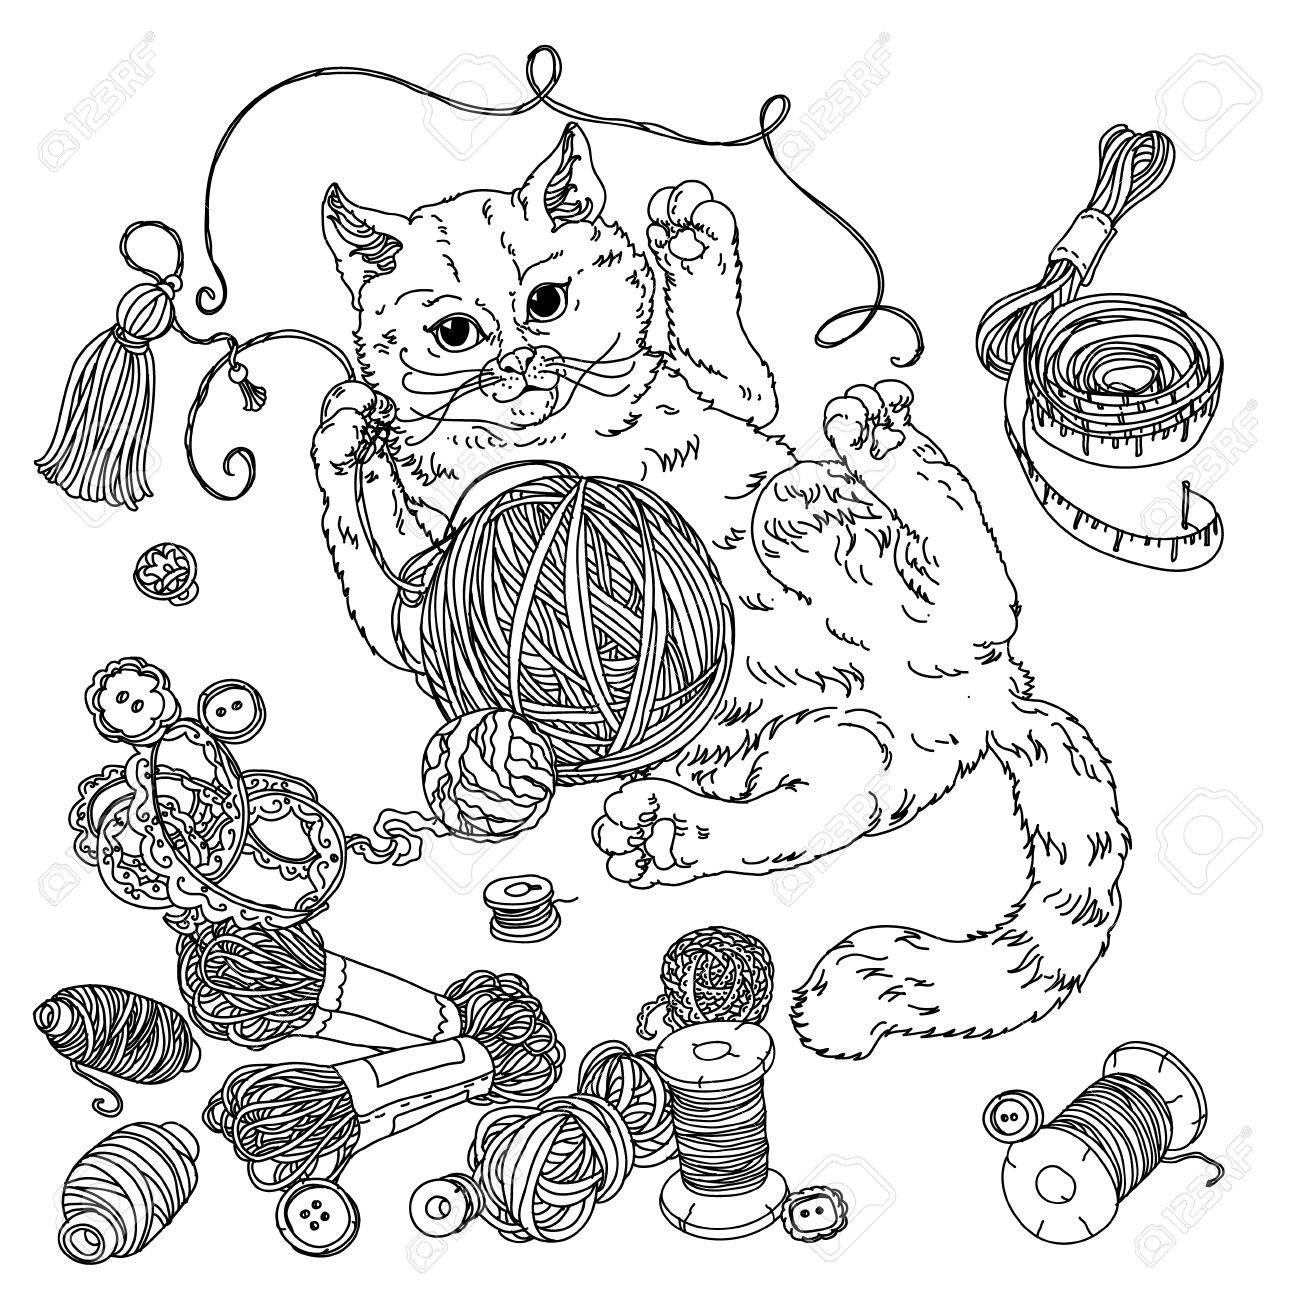 Kitten Playing With A Ball Of Yarn And Needlework Items. Hand-drawn ...